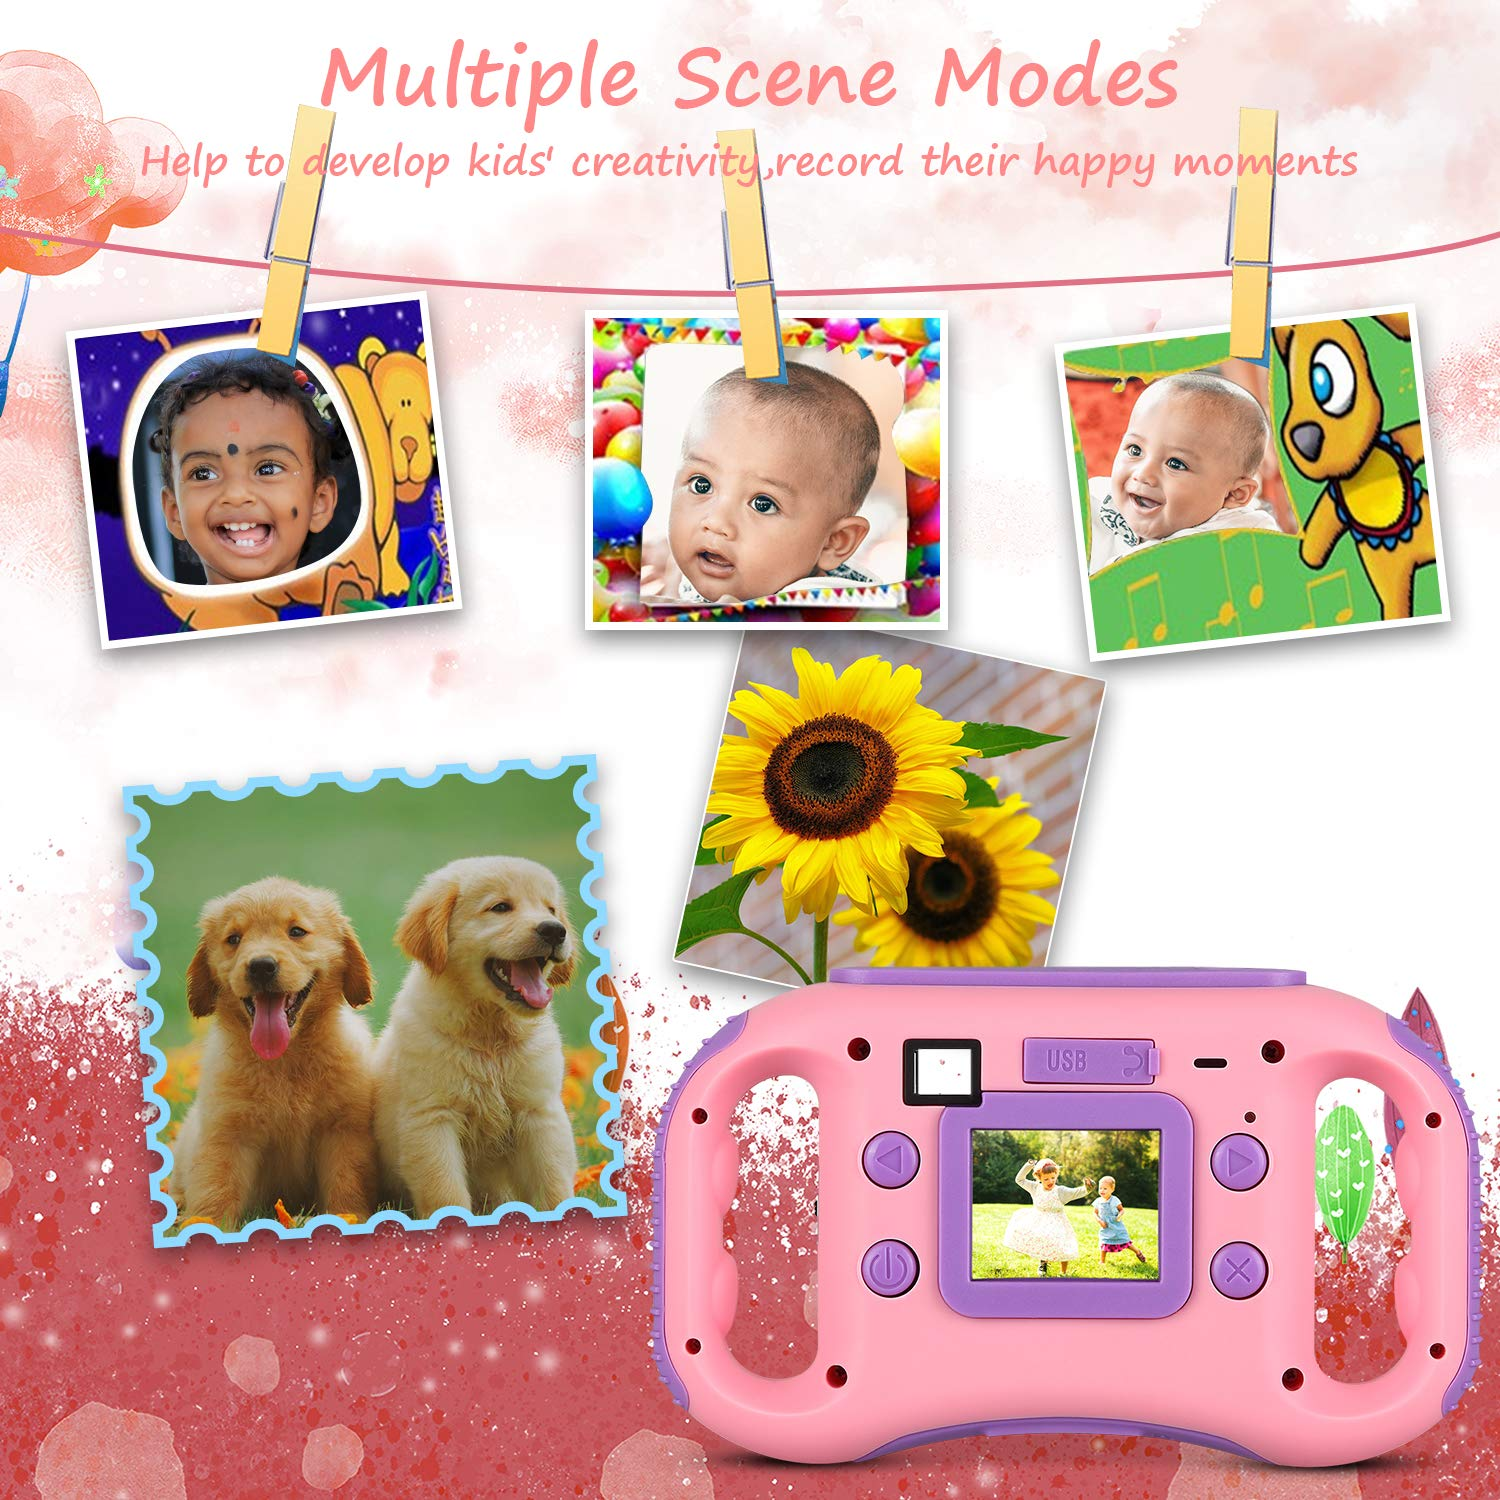 AGM Kids Camera for Girls & Boys, 1.77Inch Children Video Recorder Toddler Digital Camera,Creative Birthday Children's Day Gifts (Pink) by AGM (Image #3)